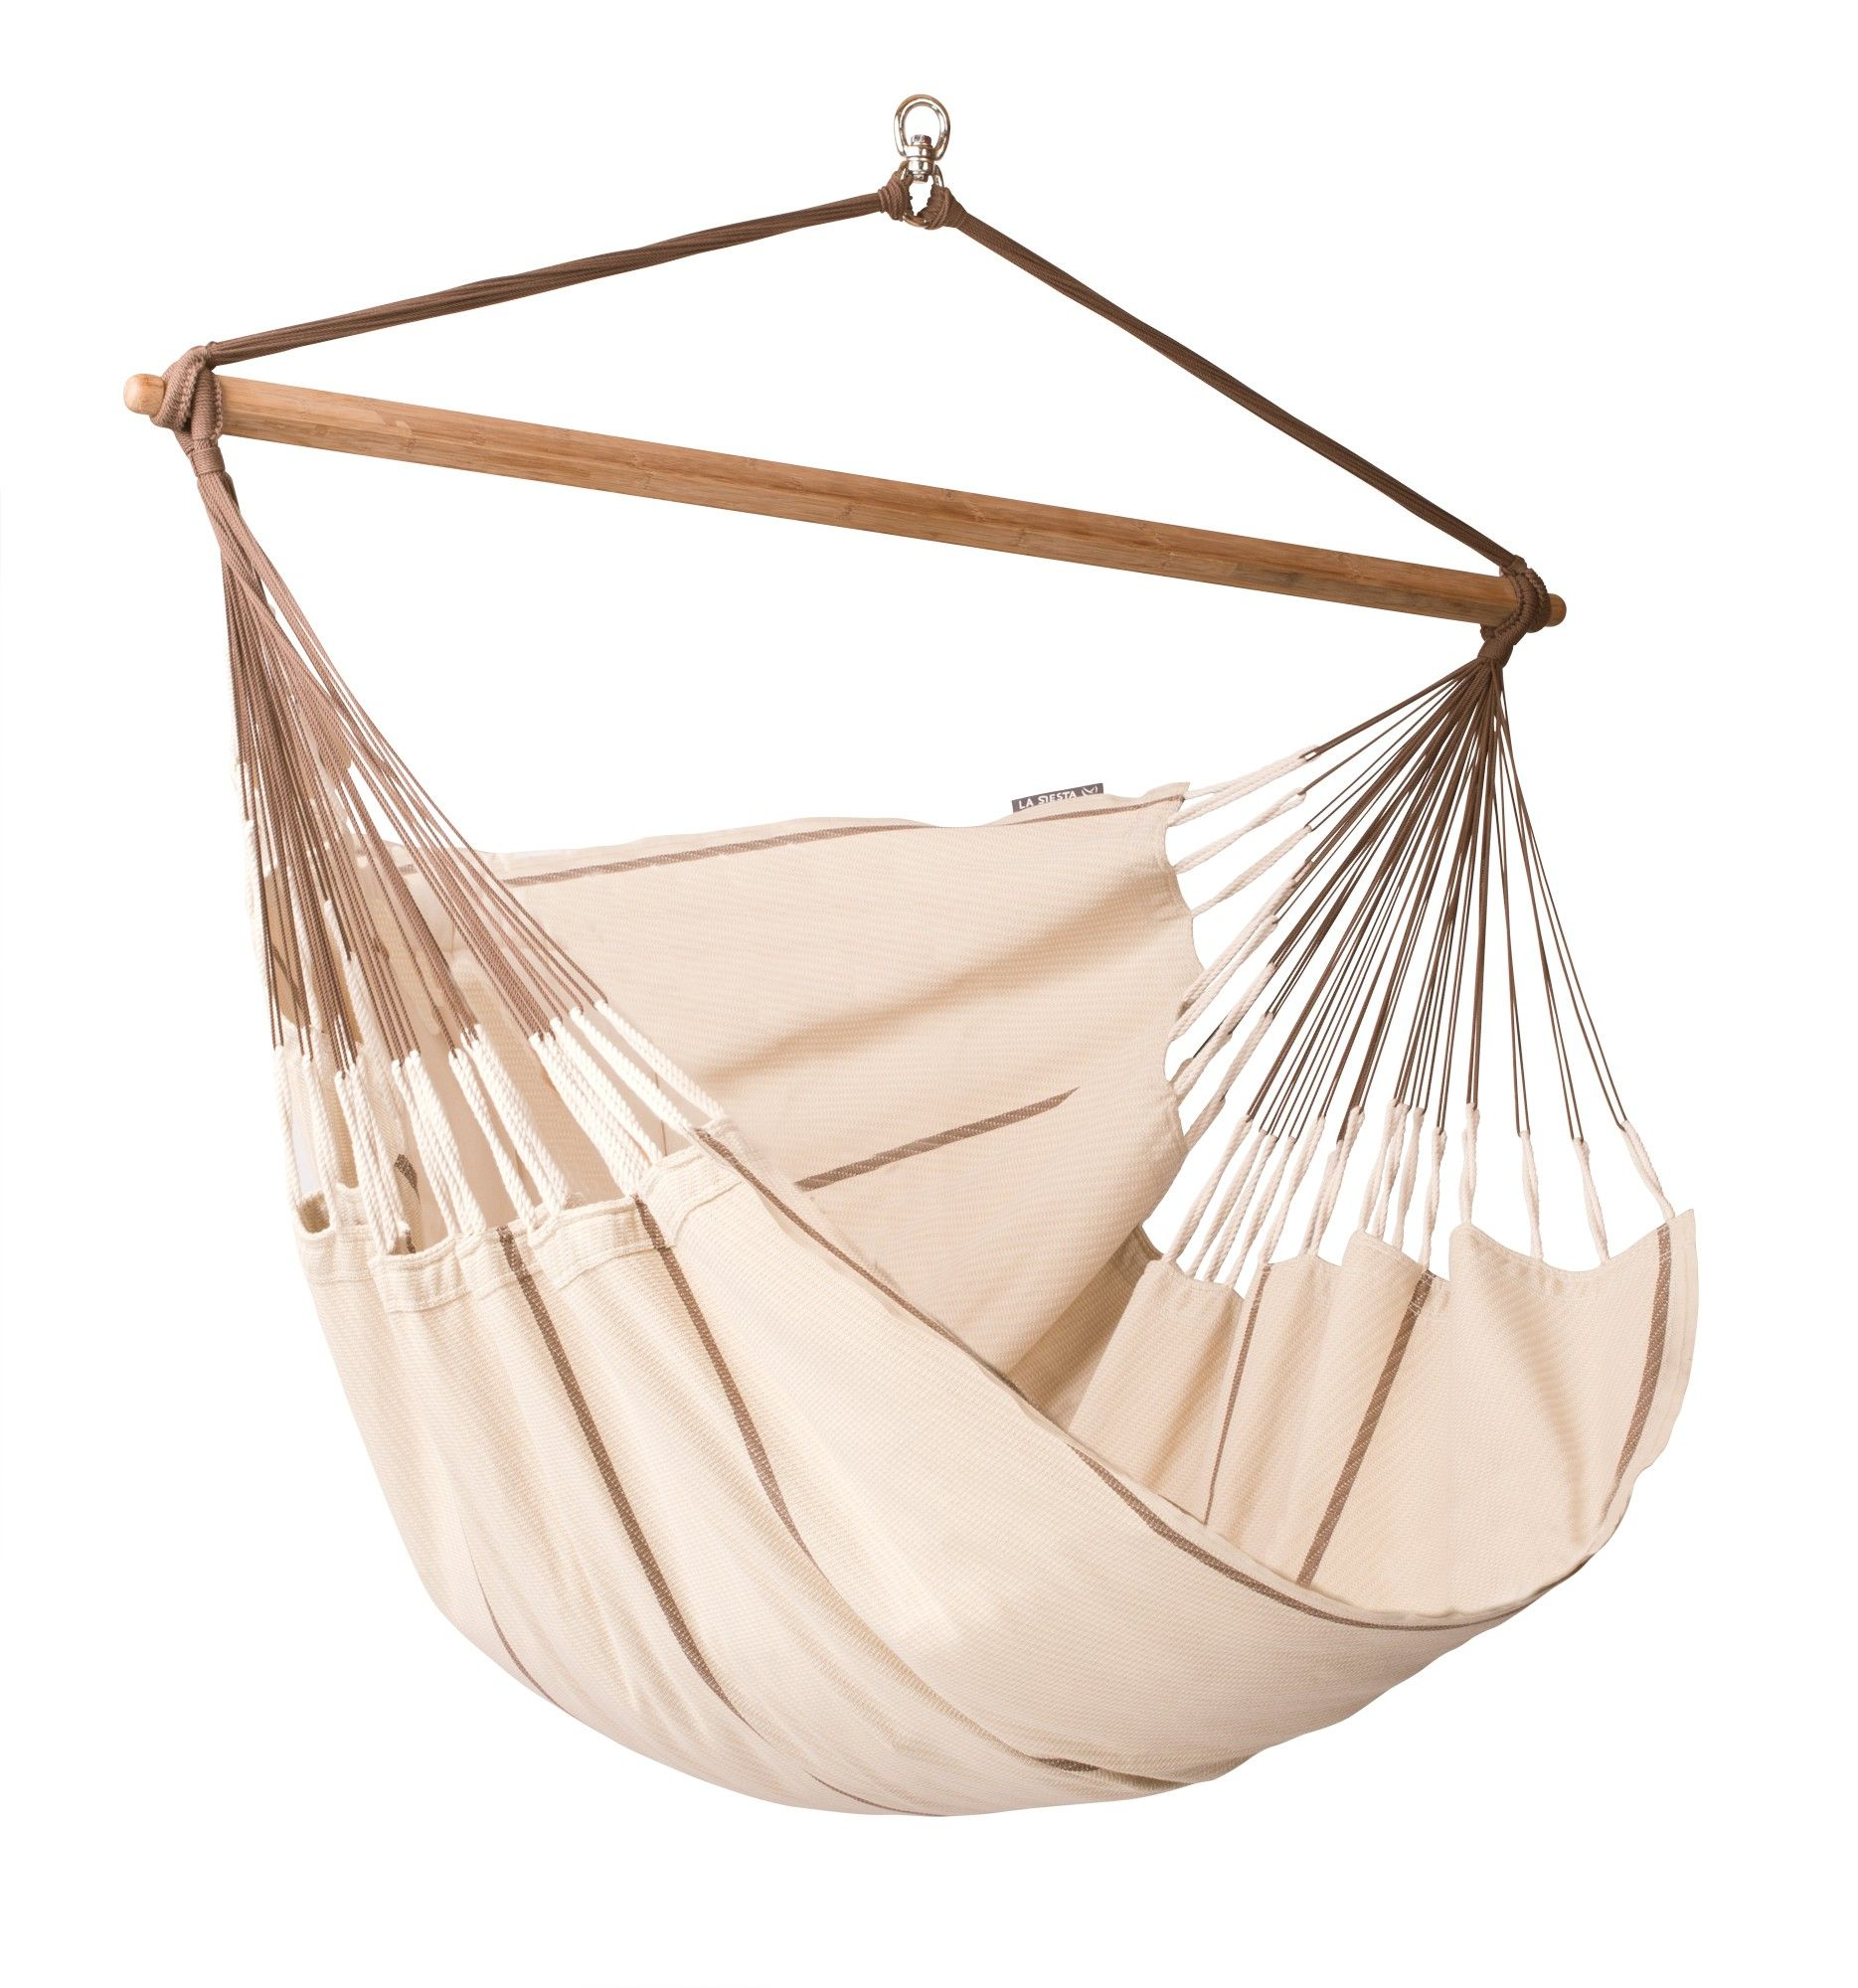 La siesta hammocks and chairs hammock chair lounger habana nougat